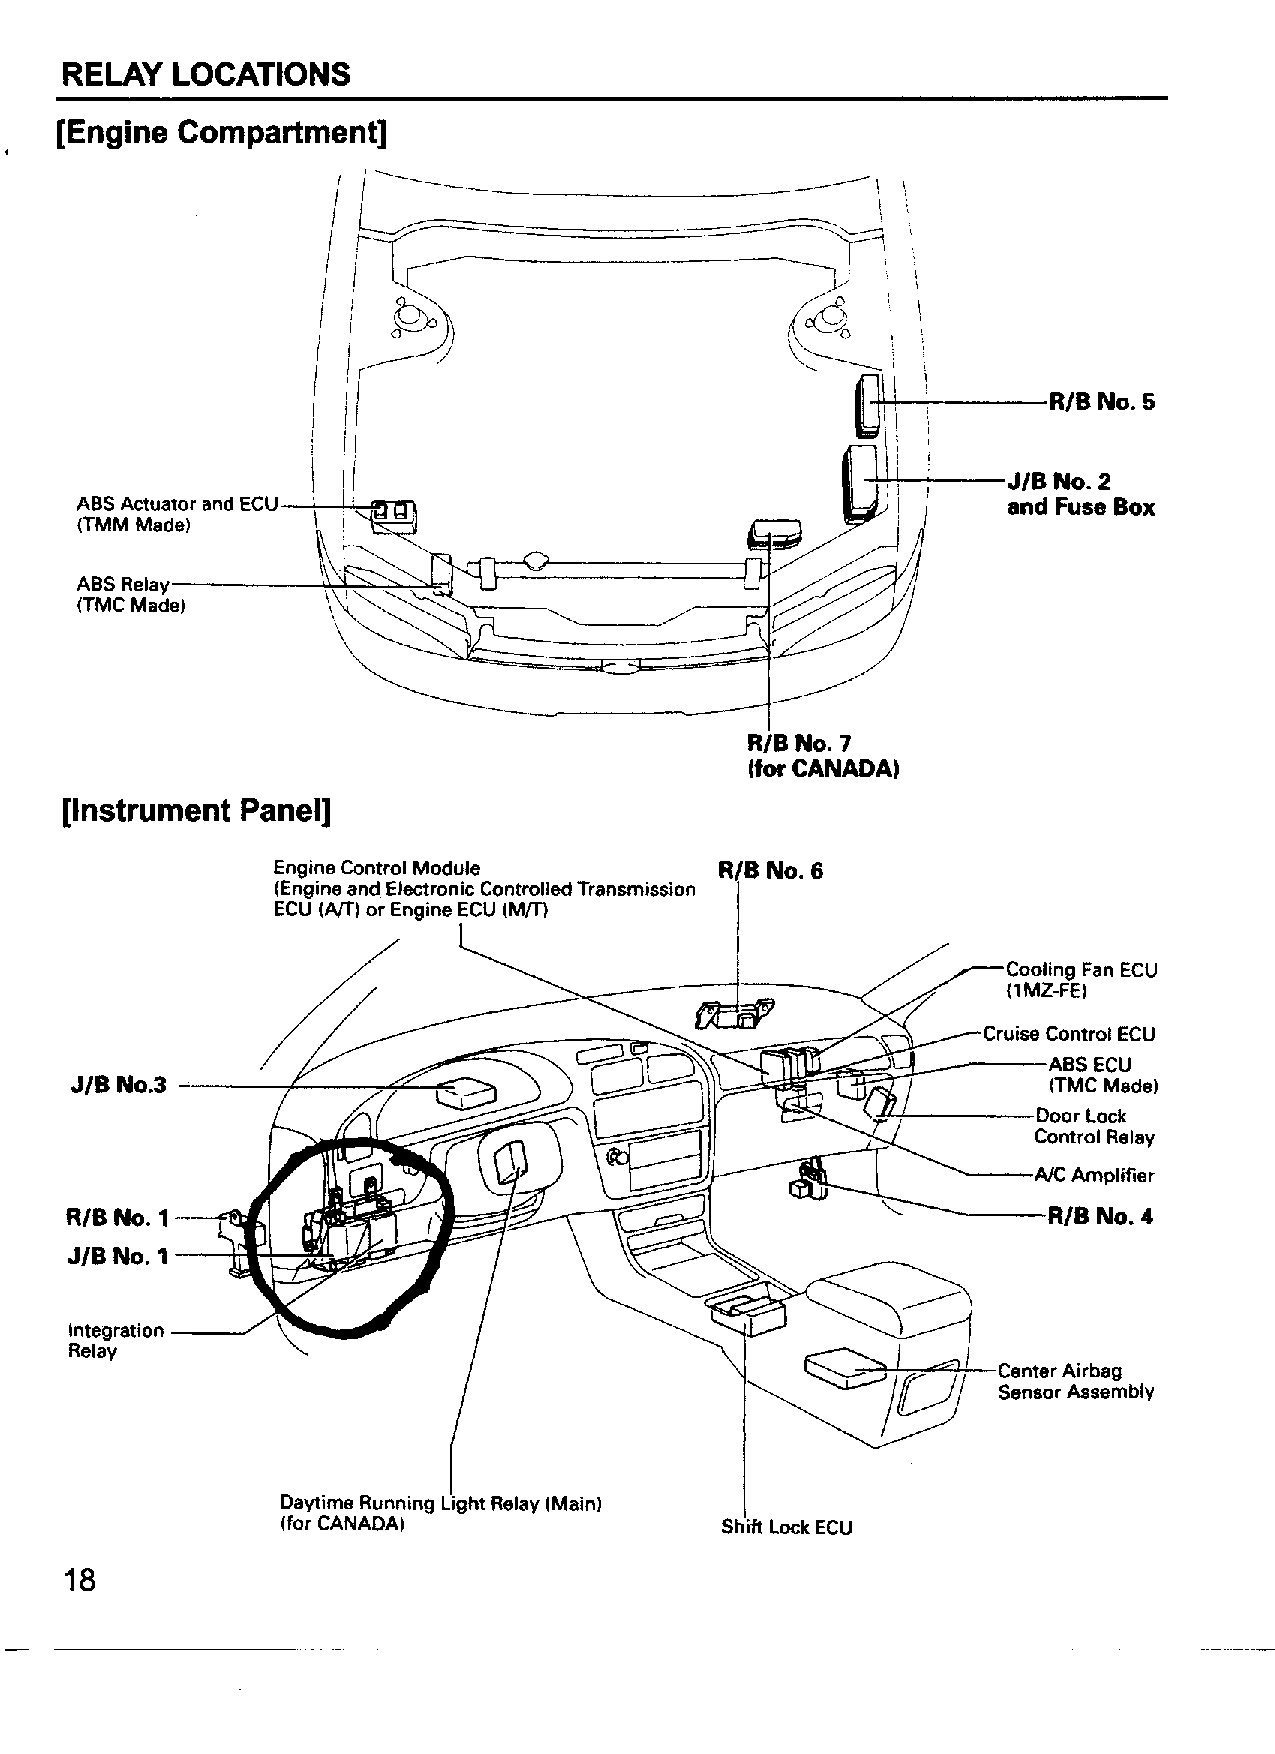 i have a 1993 toyota camry windows wouldn t go up after i put them rh justanswer com 2006 toyota wish fuse box diagram 1987 Toyota Camry Fuse Box Diagram